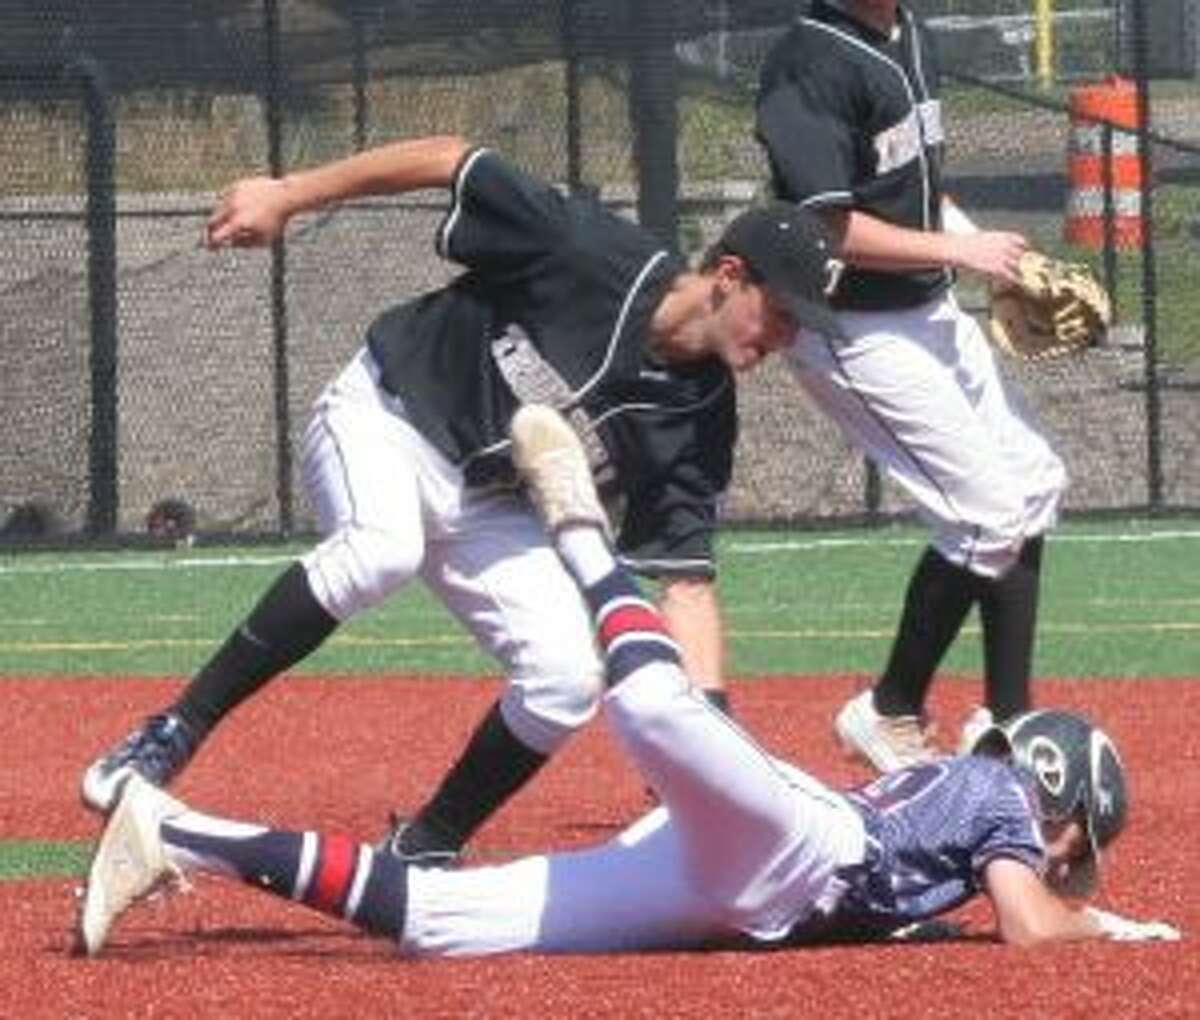 Trumbull's Jack Wallace tags out Pittsfield's Michael Britten in a second-inning rundown. - Bill Bloxsom photos